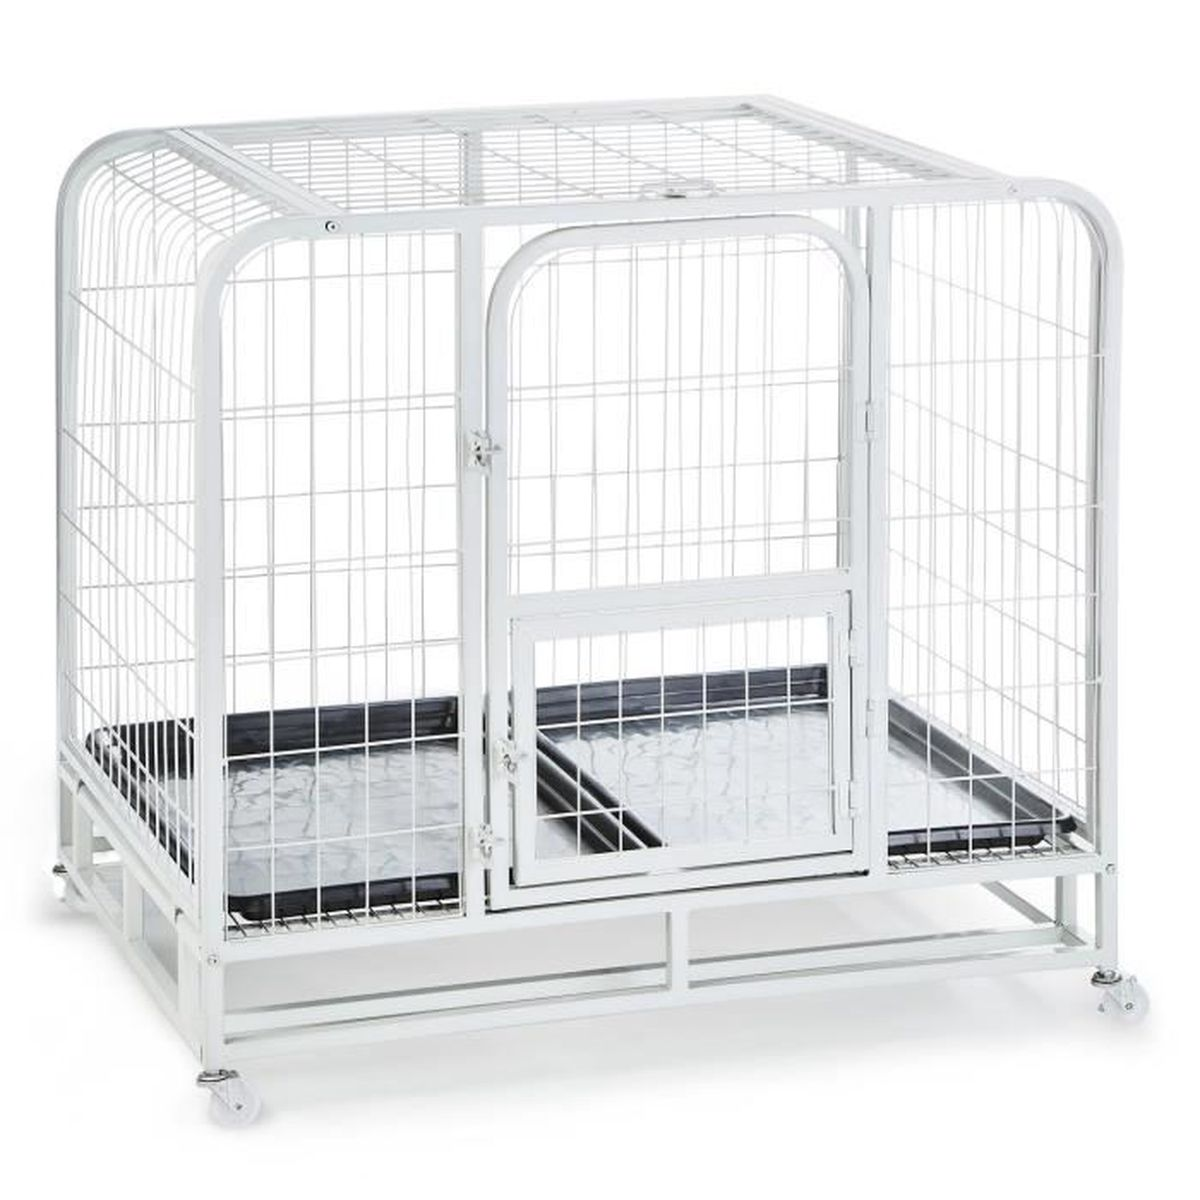 oneconcept cage de transport grillag e pour animaux. Black Bedroom Furniture Sets. Home Design Ideas